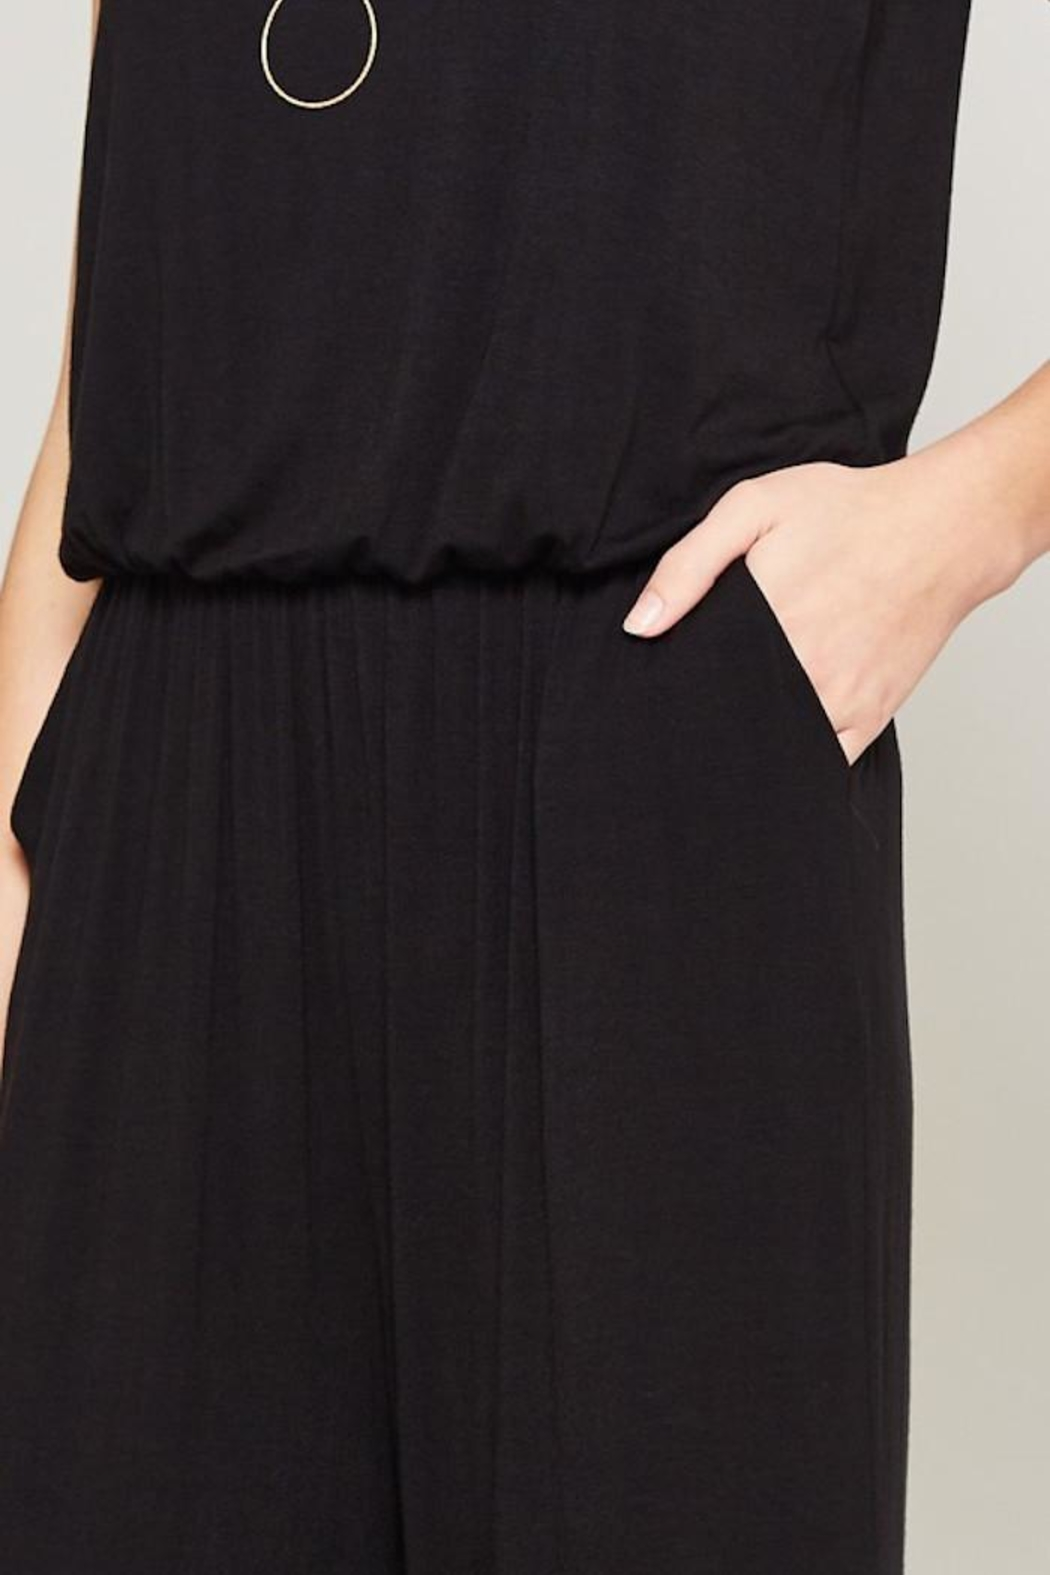 Beeson River Laid Back Jumpsuit - Back Cropped Image